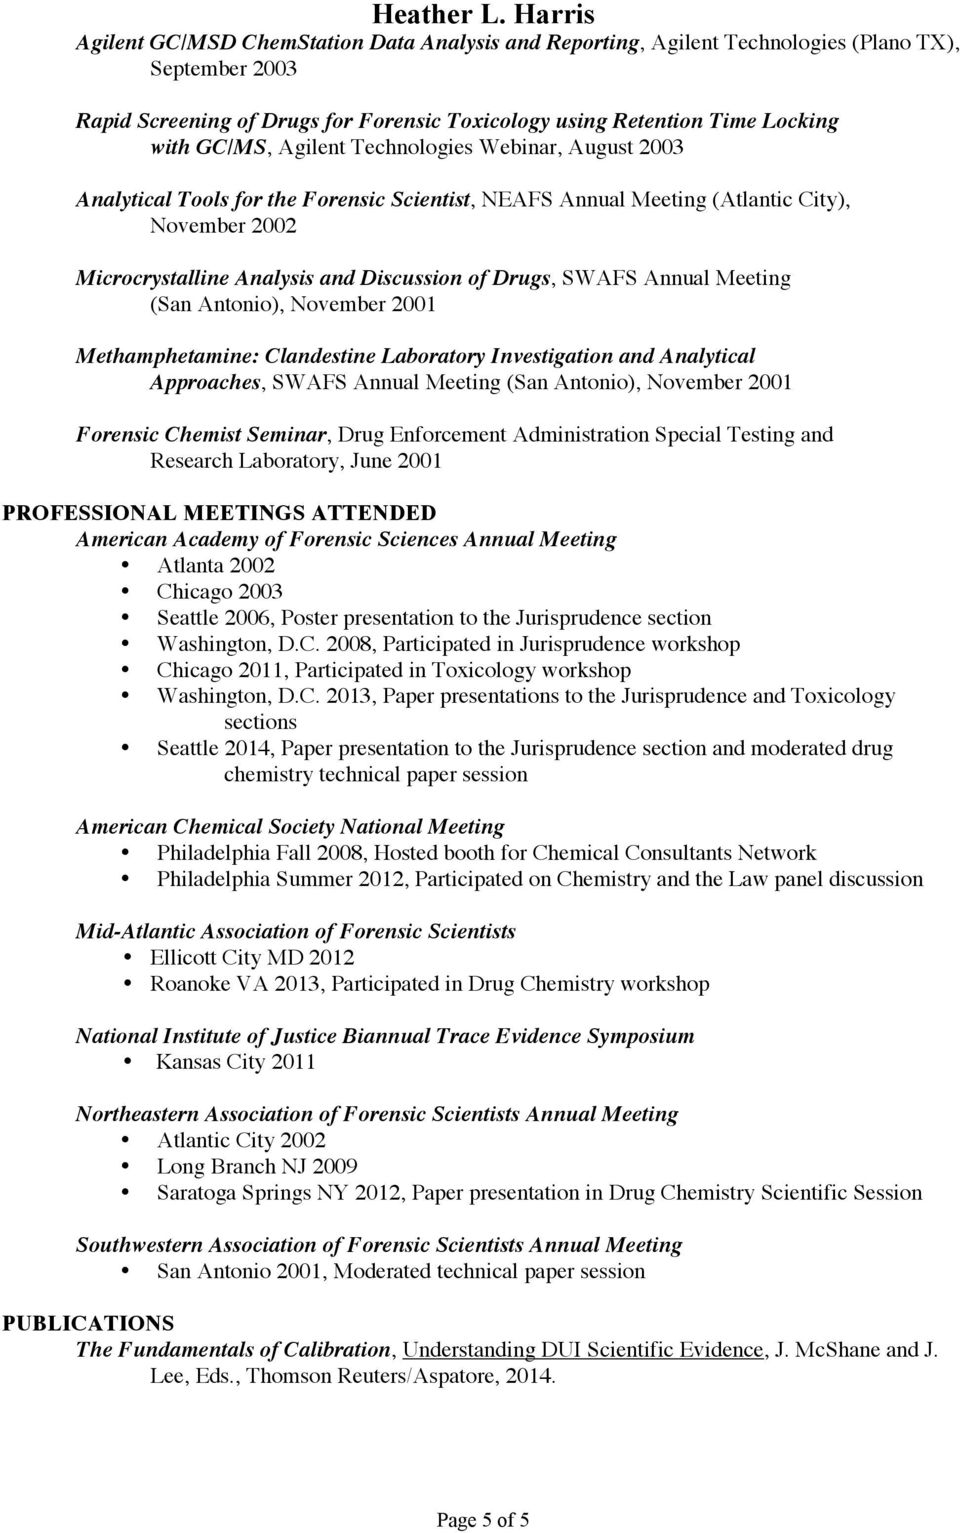 Annual Meeting (San Antonio), November 2001 Methamphetamine: Clandestine Laboratory Investigation and Analytical Approaches, SWAFS Annual Meeting (San Antonio), November 2001 Forensic Chemist